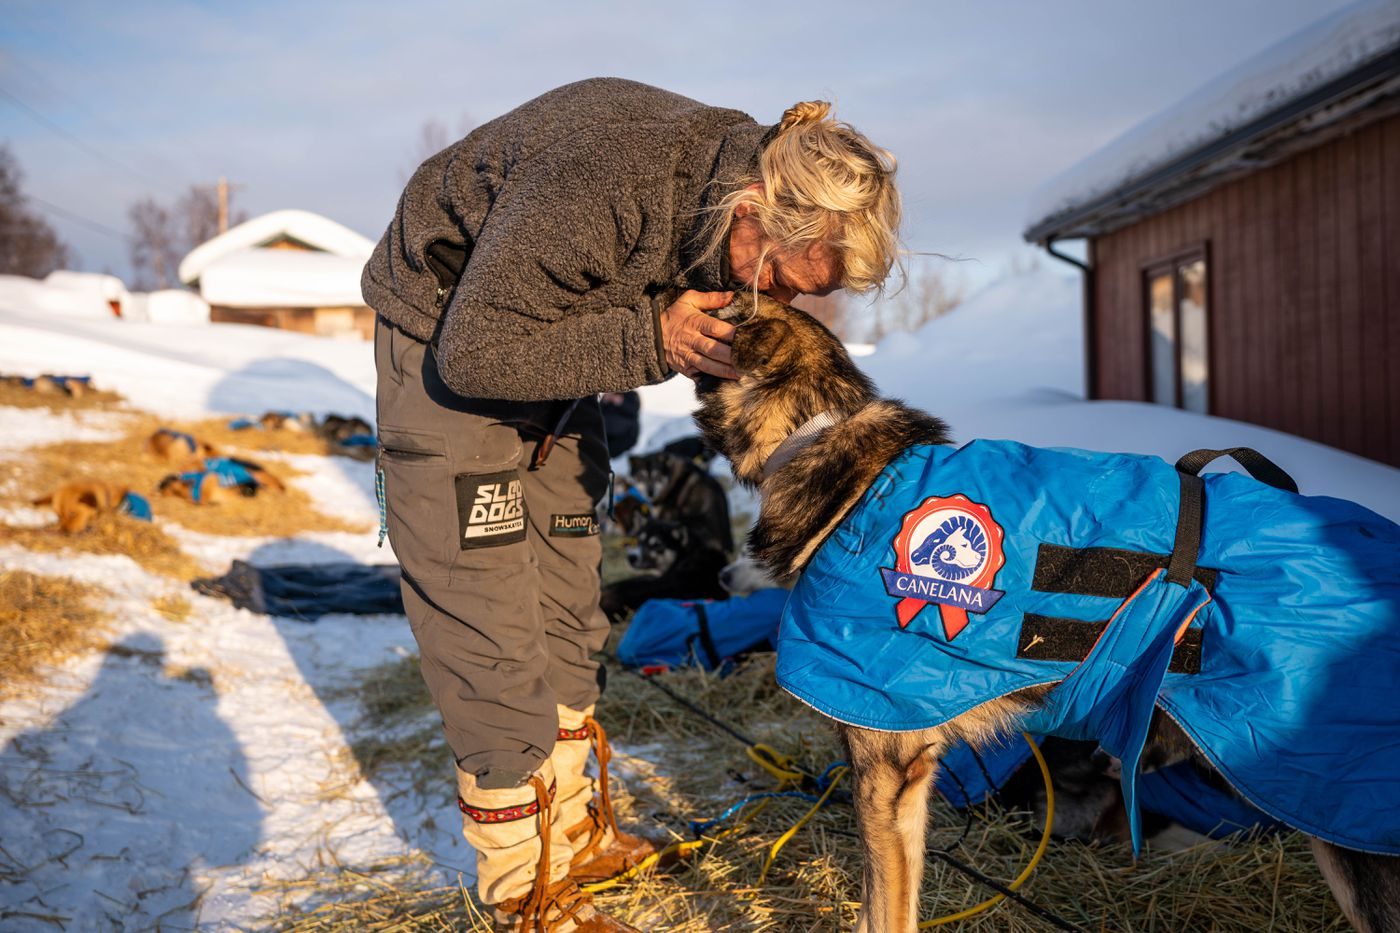 Mille Porsild kisses one of her dogs in Takotna on Wednesday, March 11, 2020 during the Iditarod Trail Sled Dog Race. (Loren Holmes / ADN)